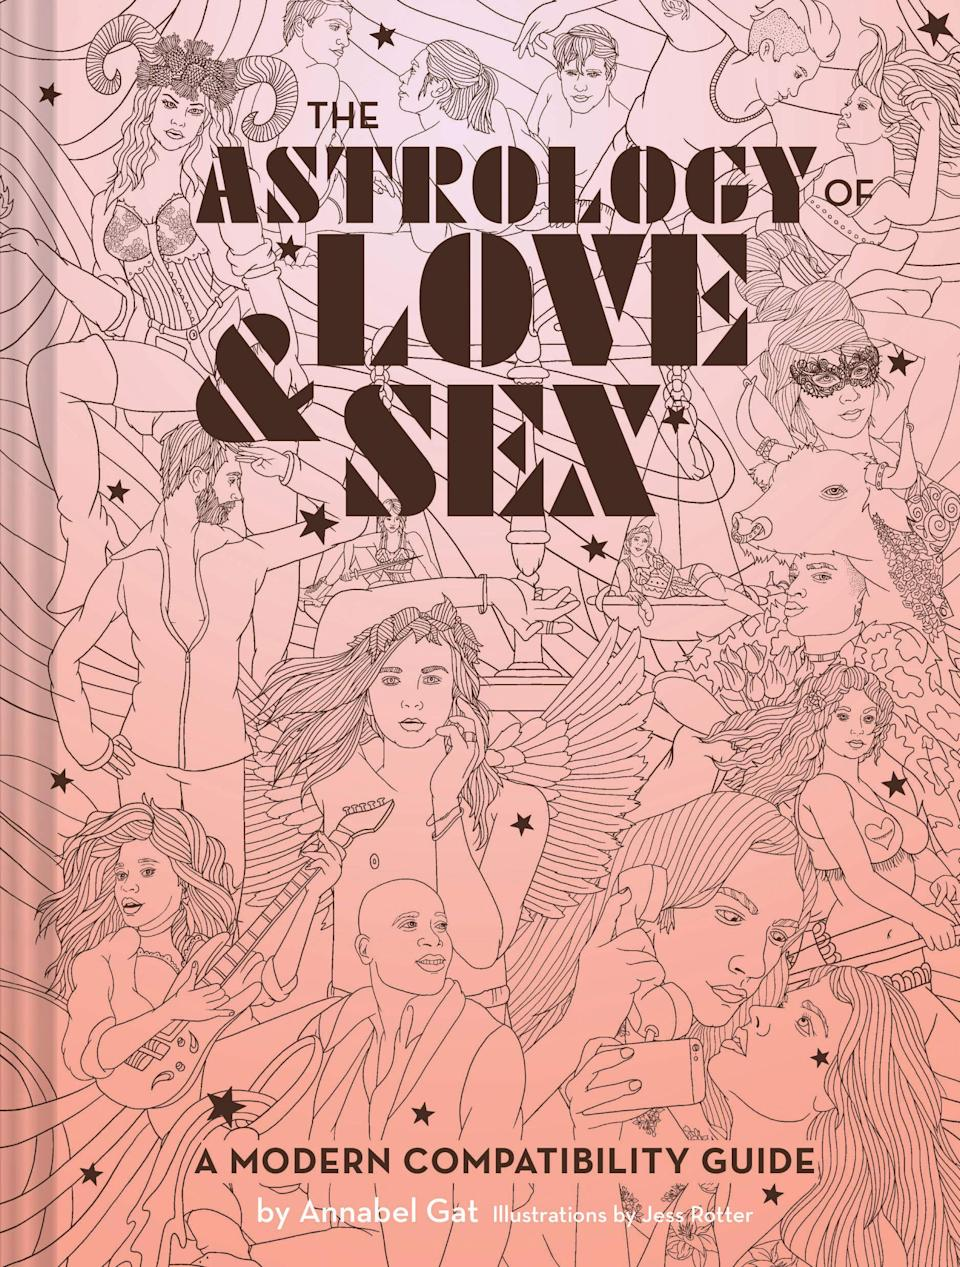 """<h3><em><a href=""""https://www.amazon.com/Astrology-Love-Sex-Modern-Compatibility/dp/1452173435"""" rel=""""nofollow noopener"""" target=""""_blank"""" data-ylk=""""slk:The Astrology of Love and Sex"""" class=""""link rapid-noclick-resp"""">The Astrology of Love and Sex</a></em> by Annabel Gat</h3><br><br>While an astro expert's guide to relationships is a great gift for any sign, Stardust says that it's of particular benefit to deeply critical Virgos. """"This book is great for Virgo season because it will give people another perspective and help Virgo's analytical mind,"""" she says. """"It will also help Virgos be less neurotic about dating and friendships.""""<br><br><strong>Annabel Gat</strong> The Astrology of Love & Sex, $, available at <a href=""""https://www.amazon.com/Astrology-Love-Sex-Modern-Compatibility/dp/1452173435"""" rel=""""nofollow noopener"""" target=""""_blank"""" data-ylk=""""slk:Amazon"""" class=""""link rapid-noclick-resp"""">Amazon</a>"""